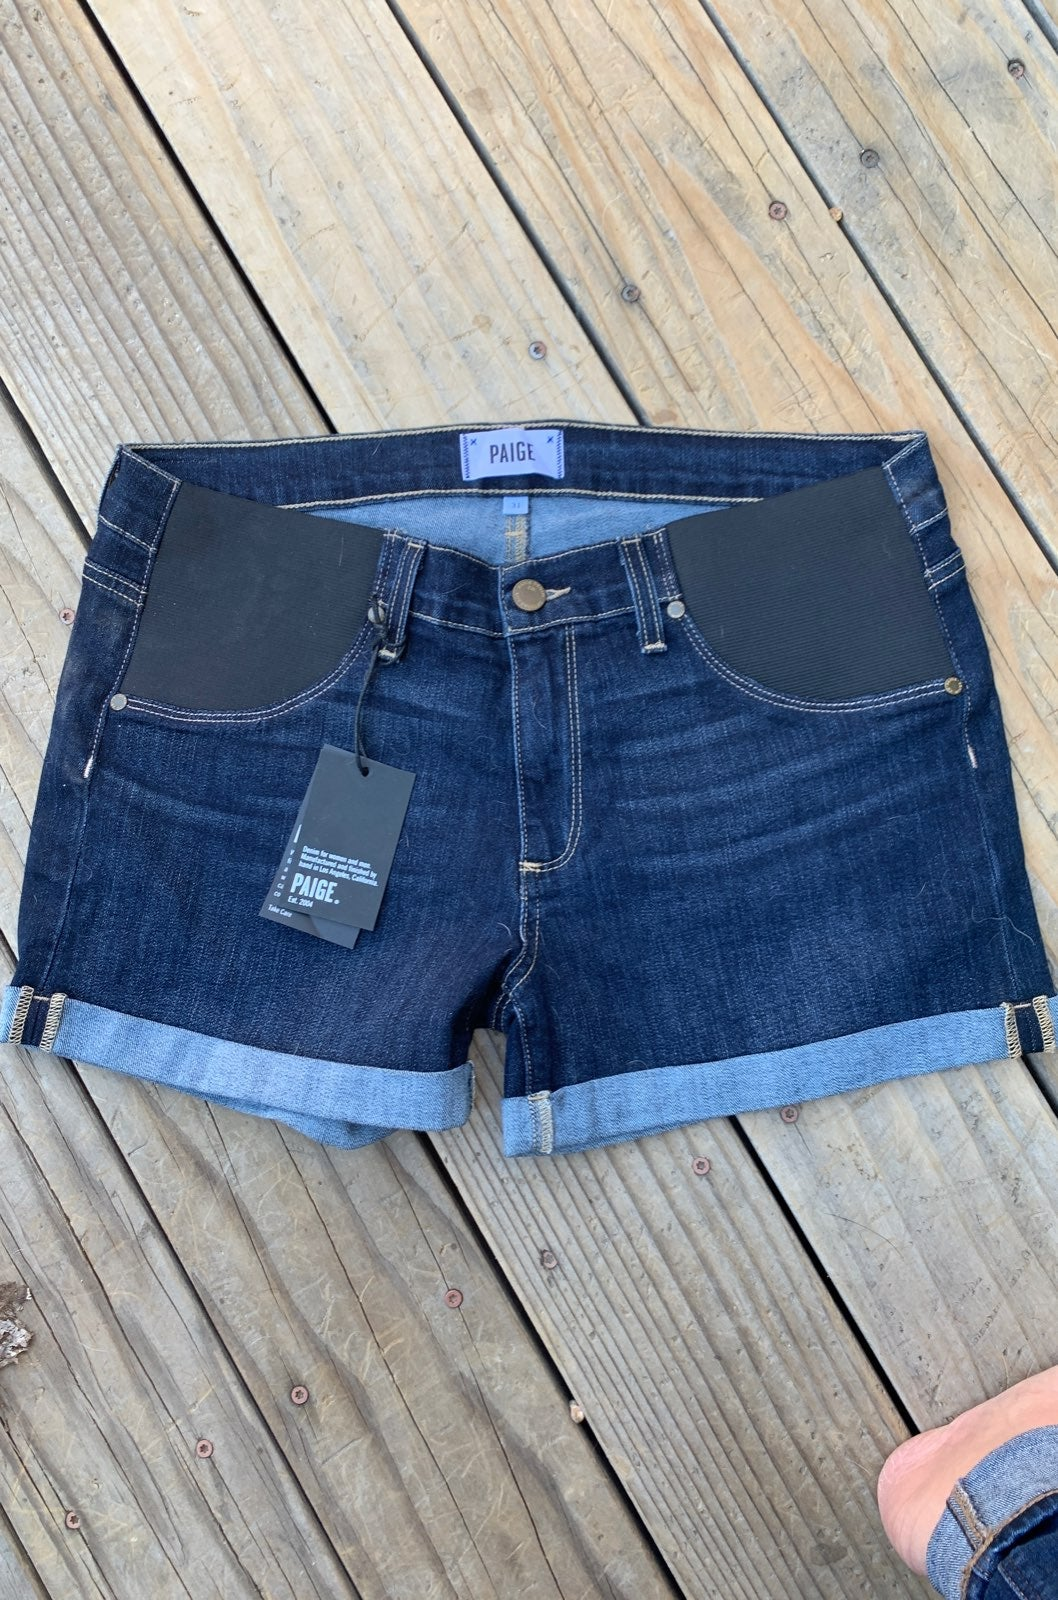 Paige jeans maternity shorts